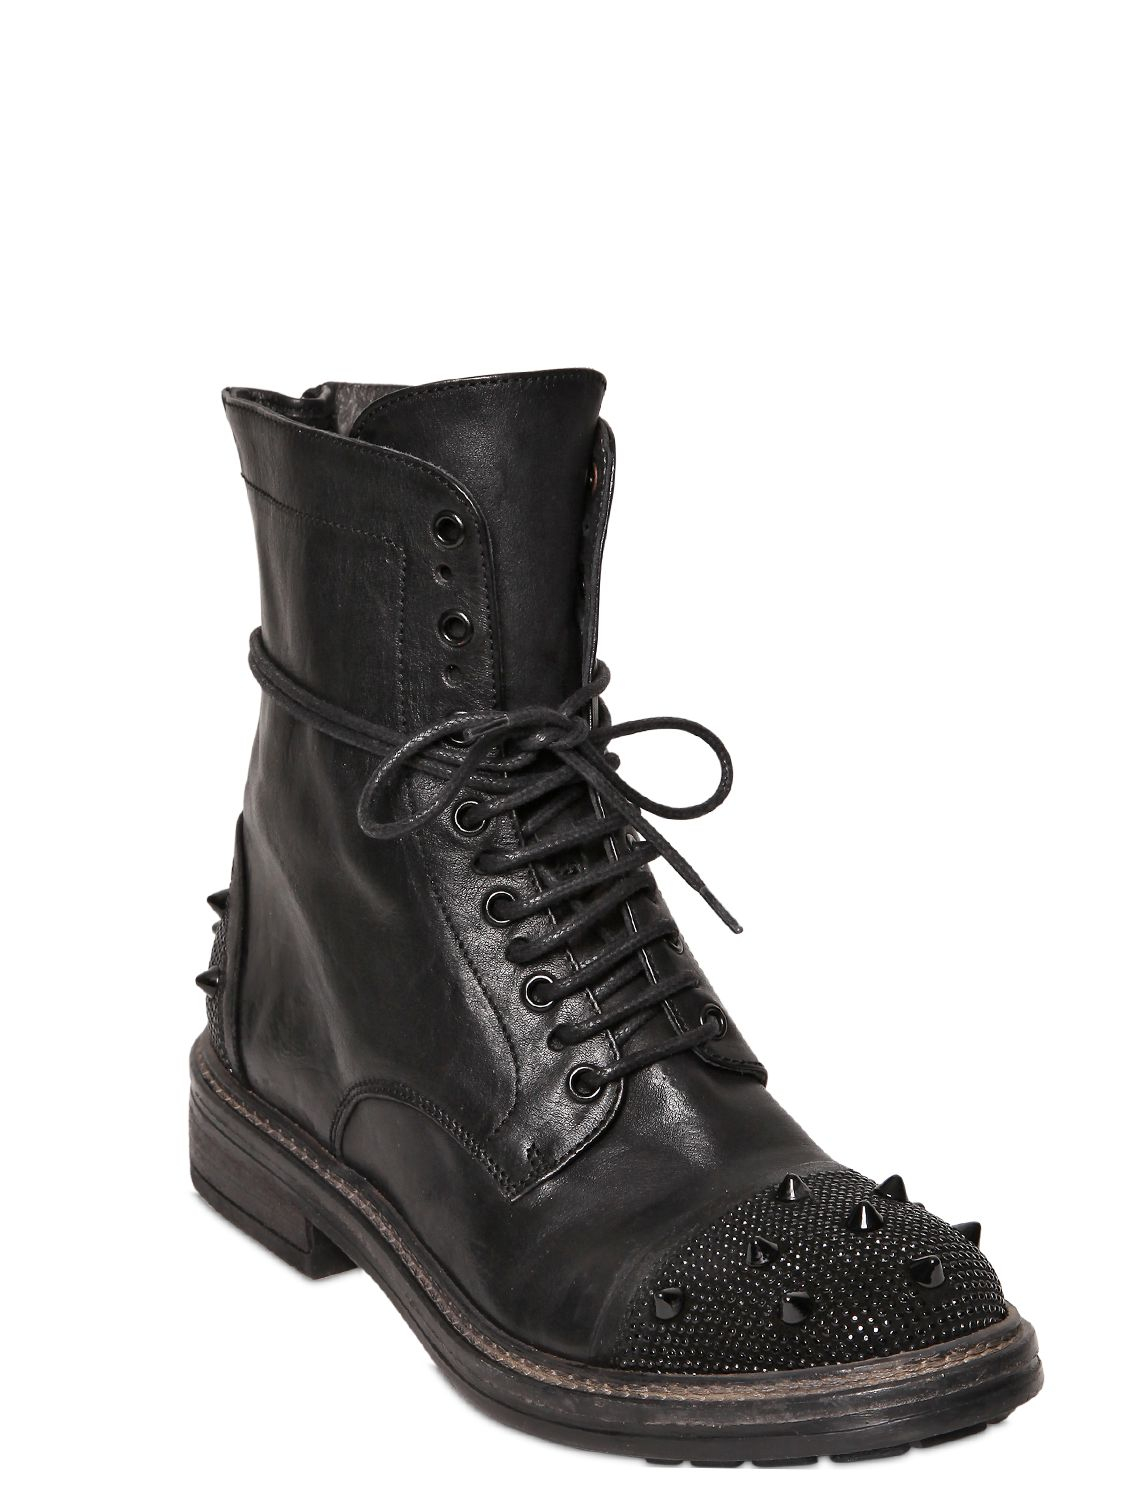 FRU.IT 20mm Embellished Lace Up Calf Boots in Black